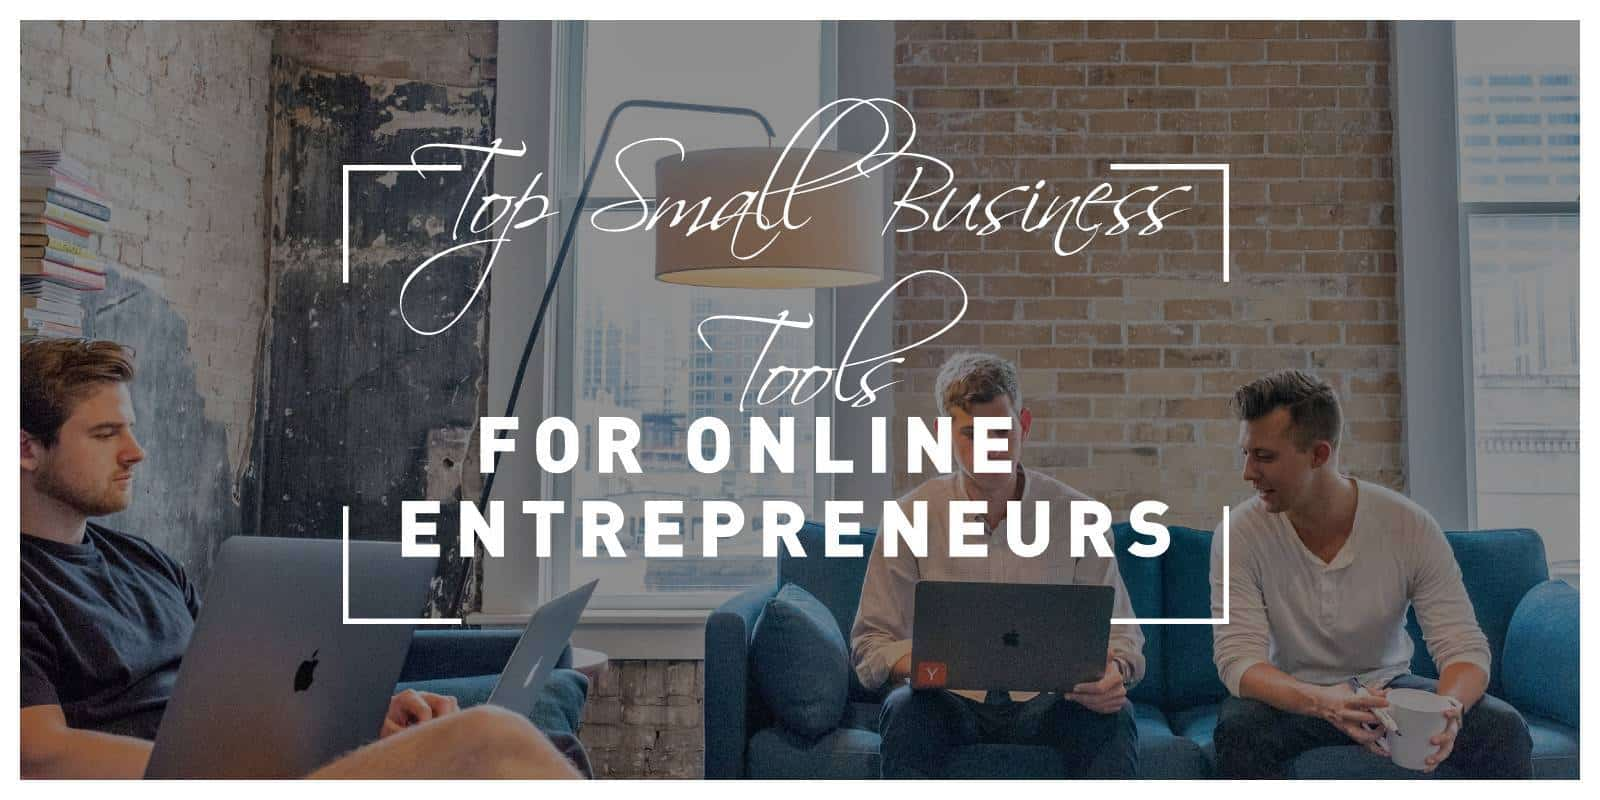 Top Seven Small Business Tools for Online Entrepreneurs to Stay on Top of Your Game and Grow Your Business